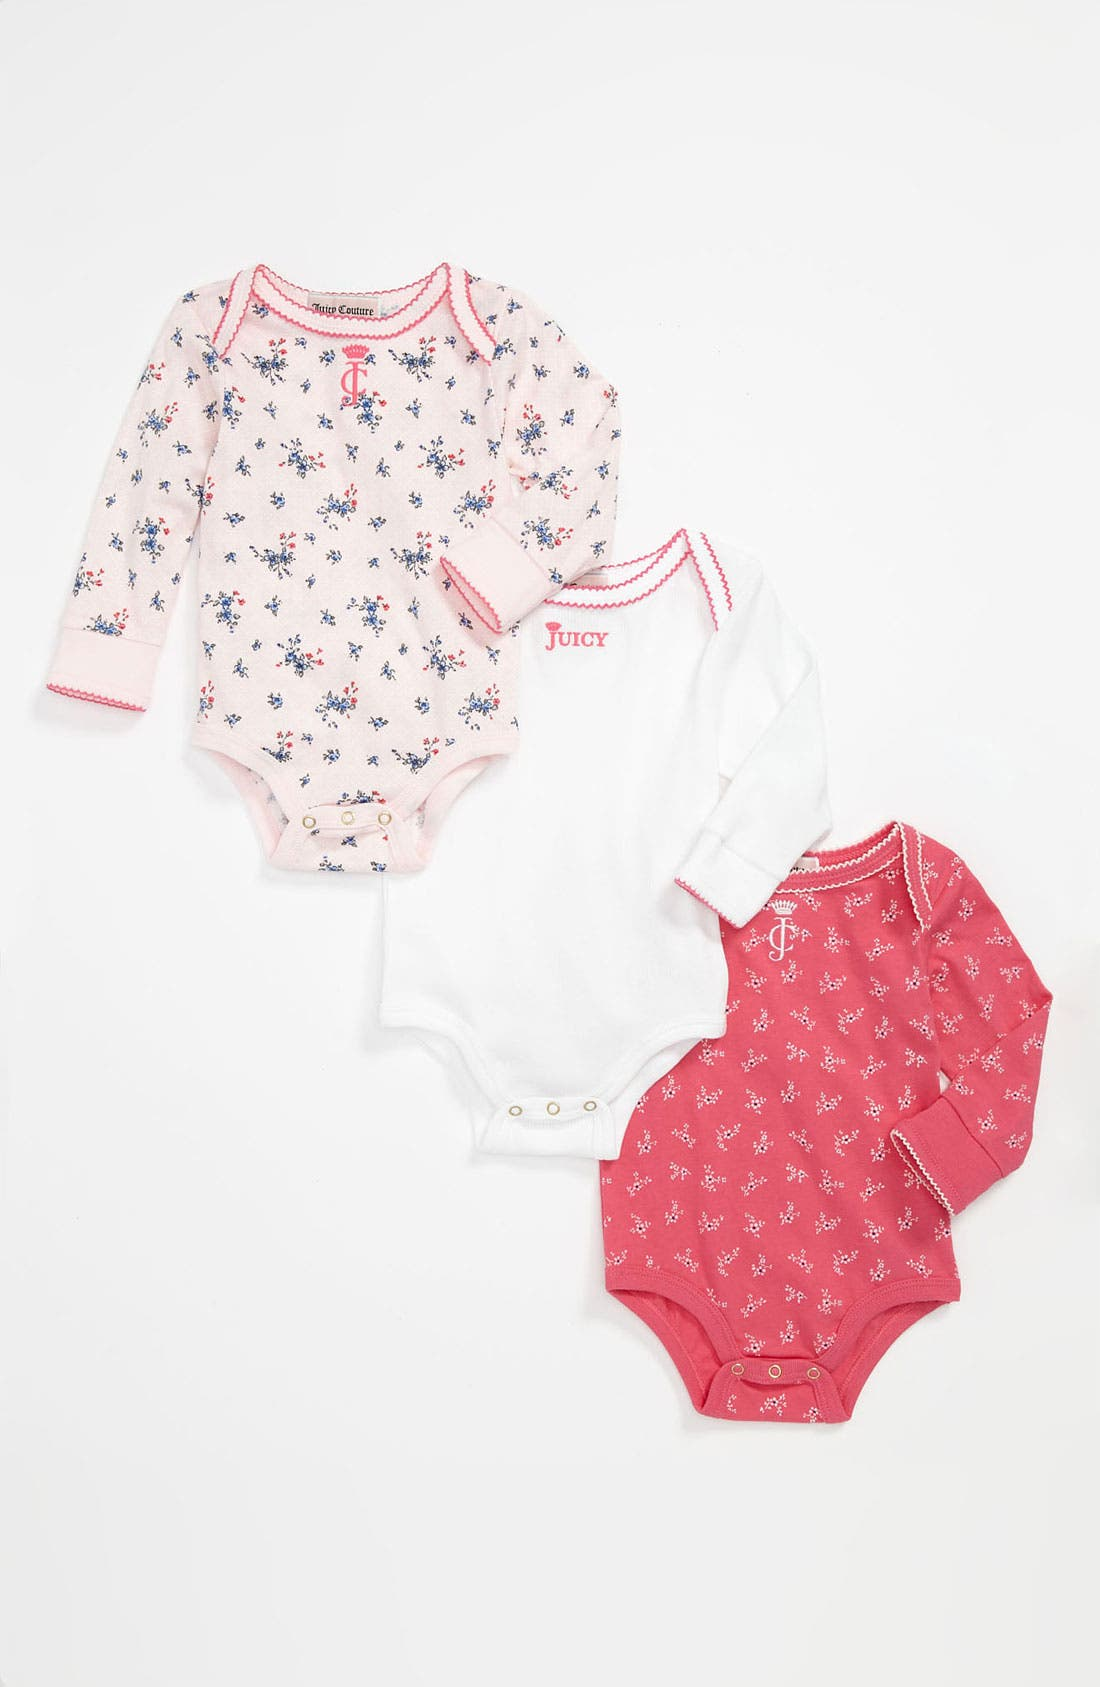 Main Image - Juicy Couture Bodysuit (3-Pack) (Baby)